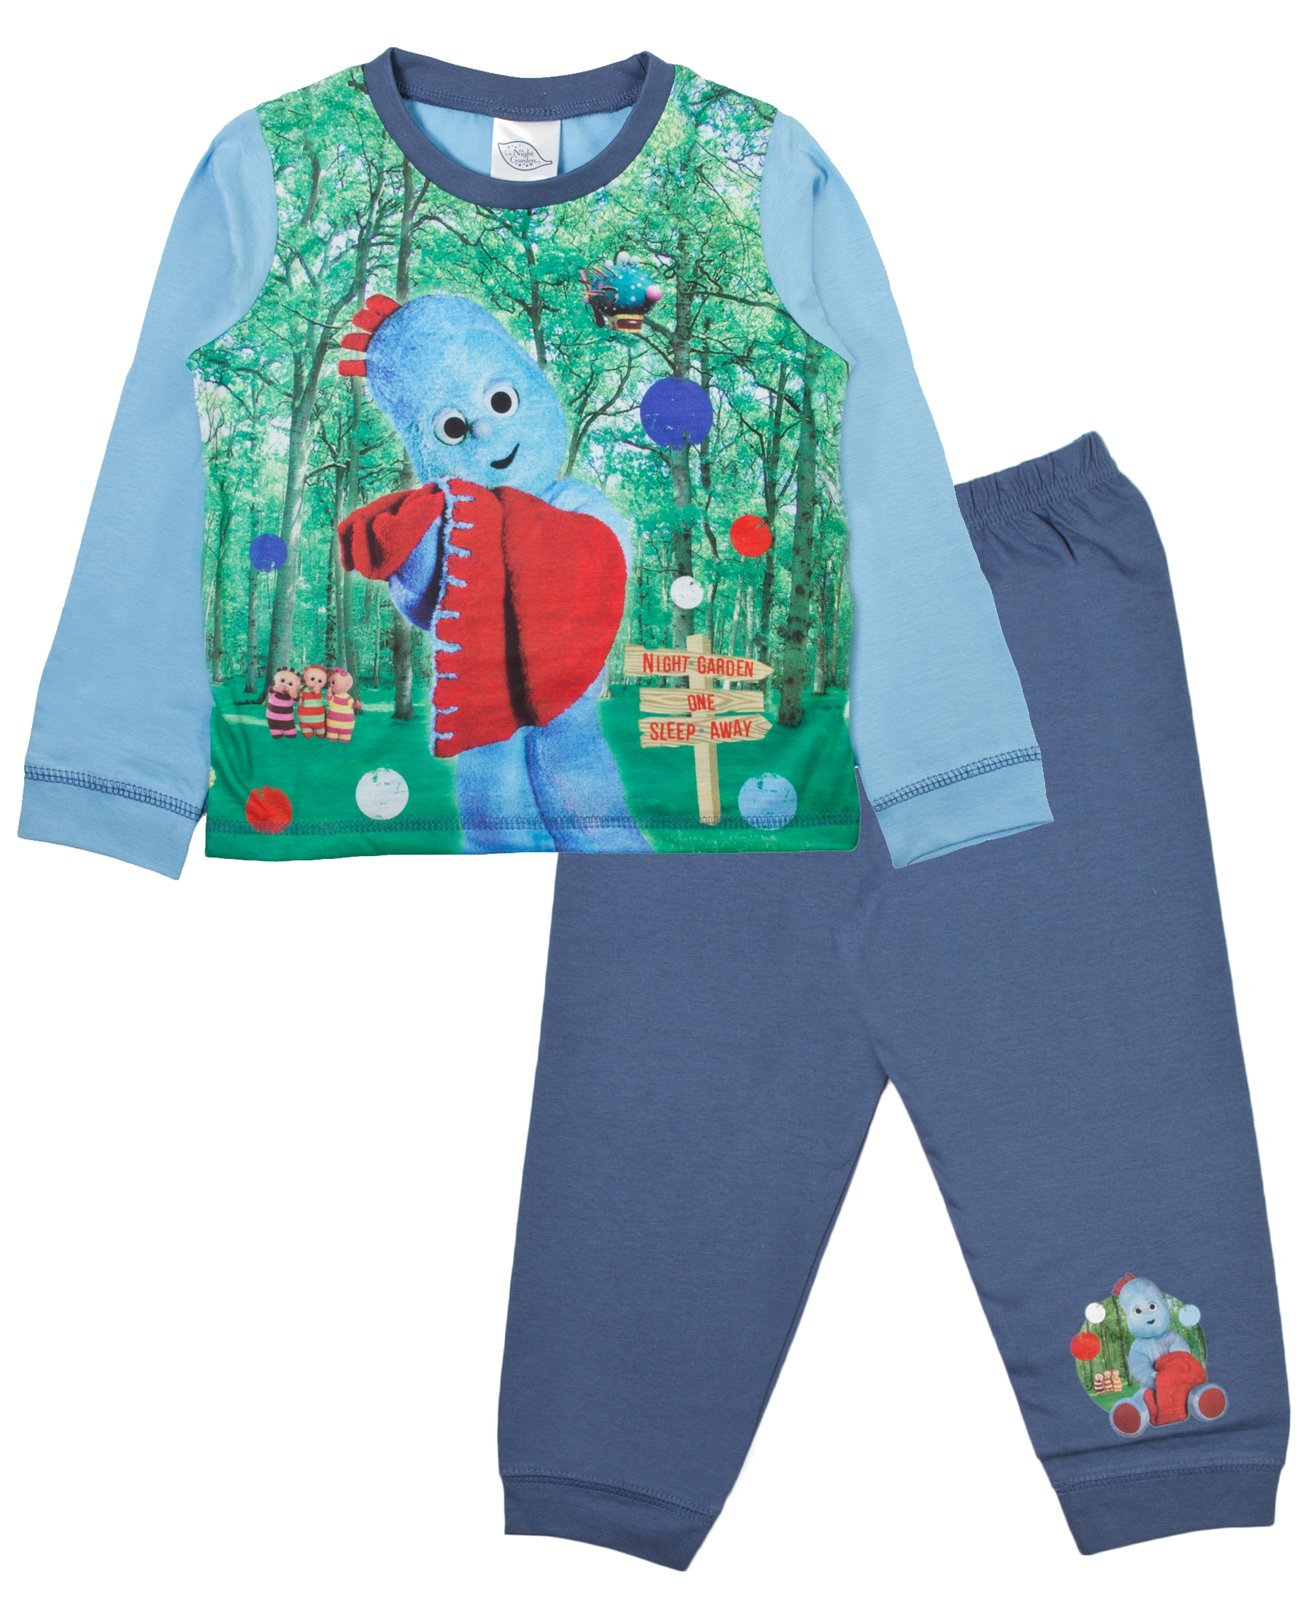 In the Night Garden Girls Upsy Daisy Snuggle Fit Pyjamas Ages 12 Months to Years